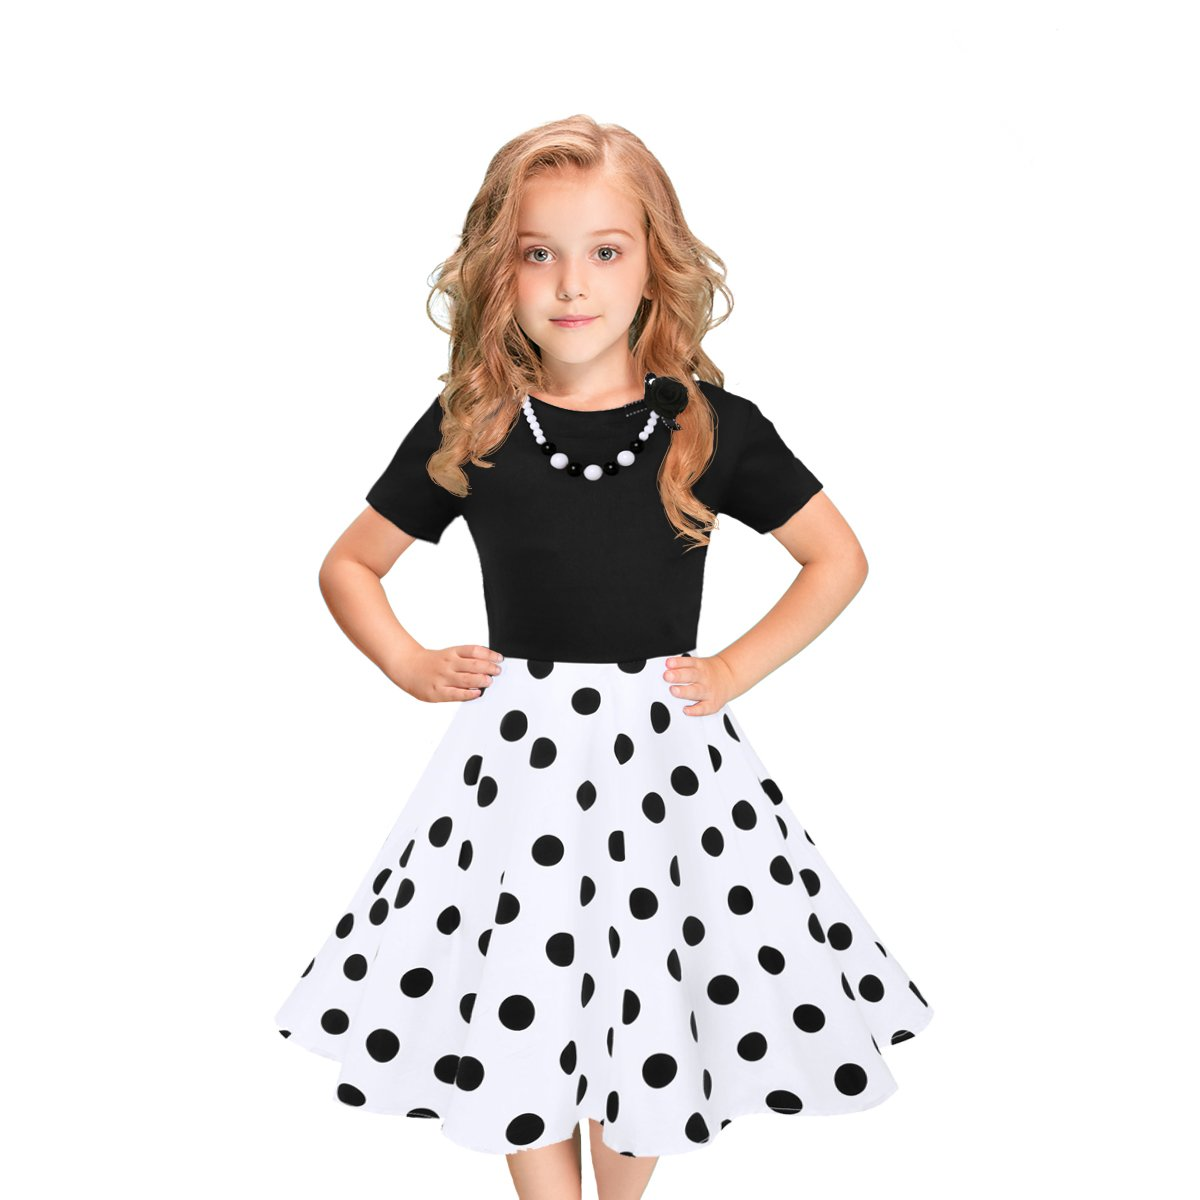 LEEGEEL Girls Short Sleeves Round Neck Swing Rockabilly Dress With Necklace (5-6 Years, White/Black Polka Dot)